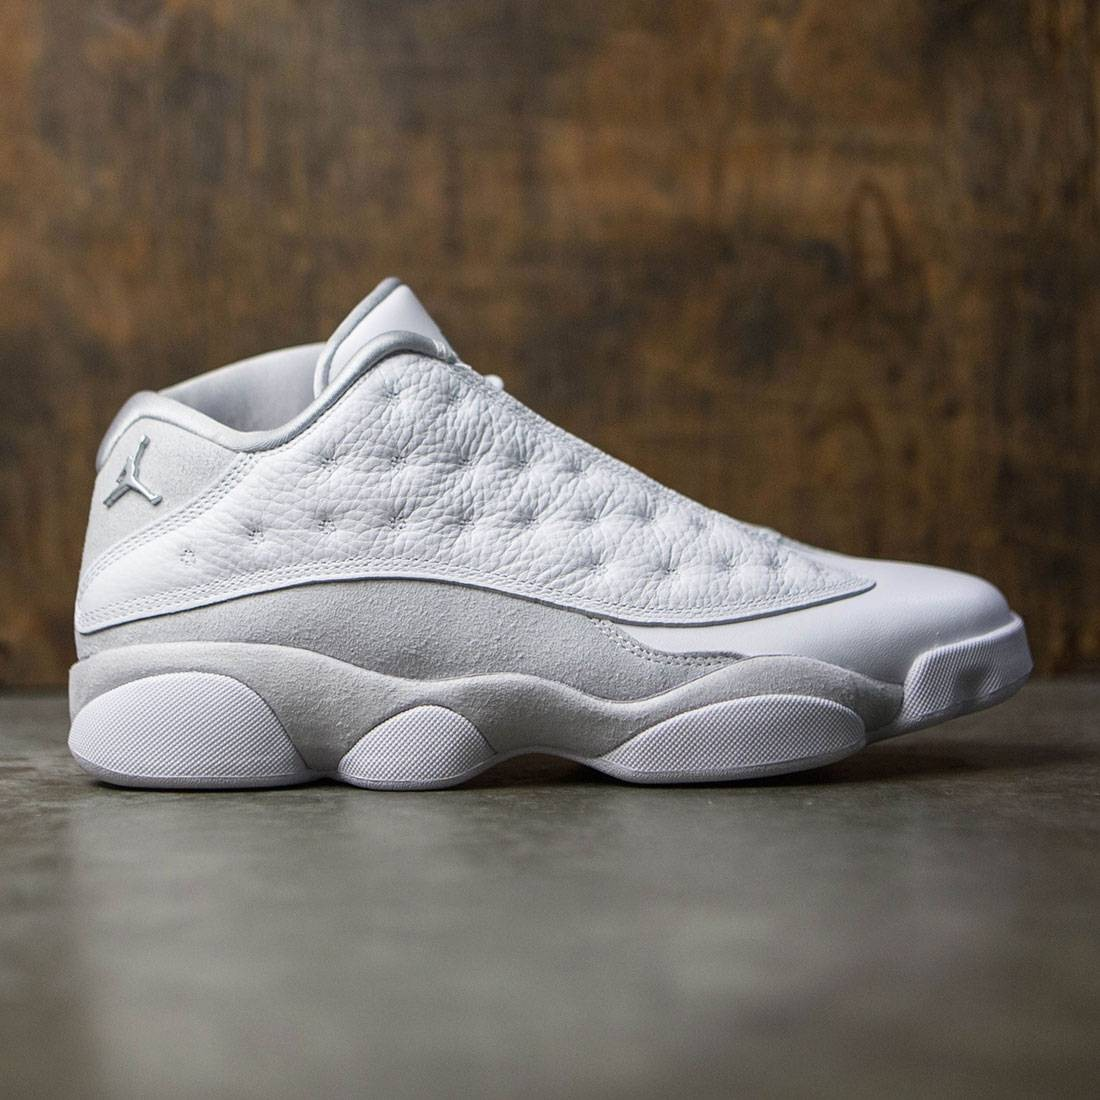 ca71131cb82 jordan men air jordan xiii retro low white metallic silver pure platinum